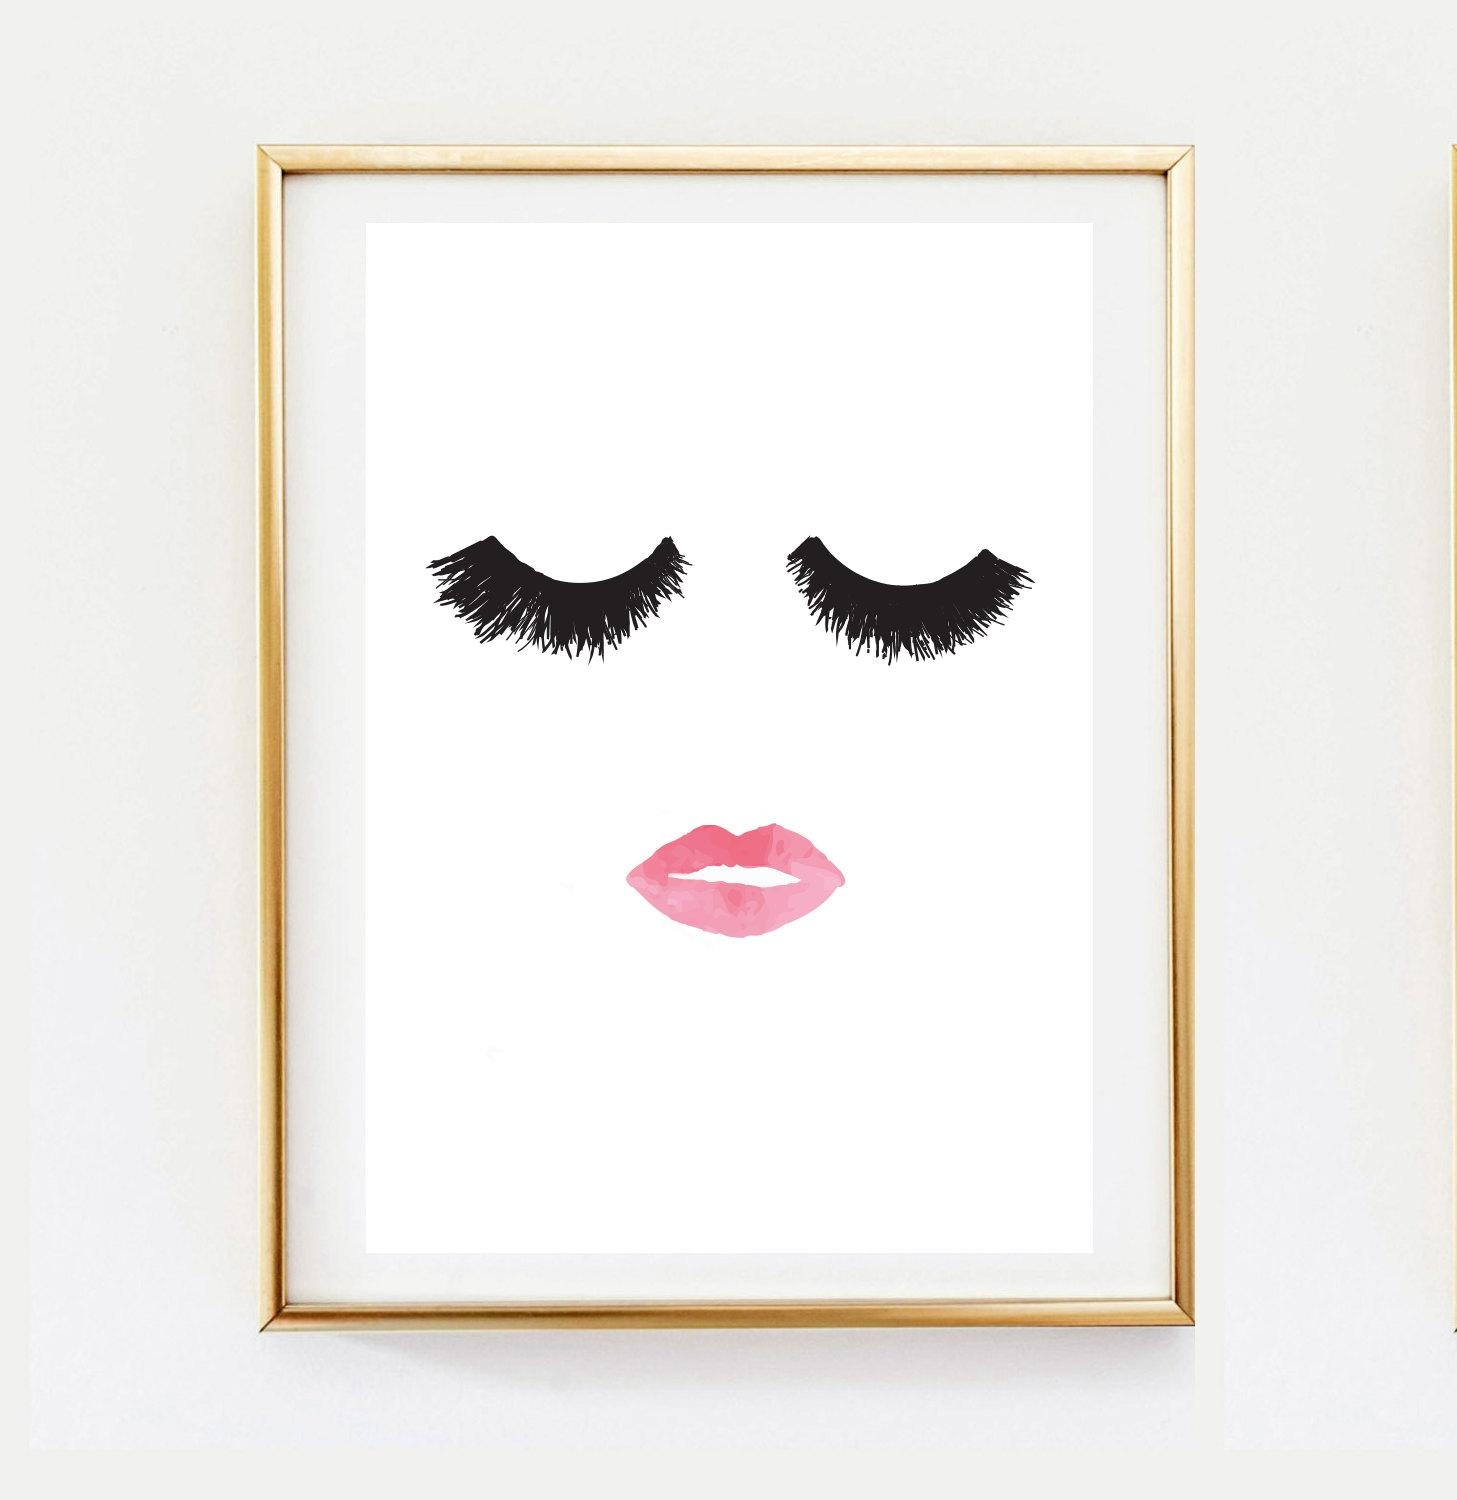 Decor : 18 Branded Adorable Glamorous Wall Art Ideas Coco Chanel With Regard To Glamorous Wall Art (Image 3 of 20)